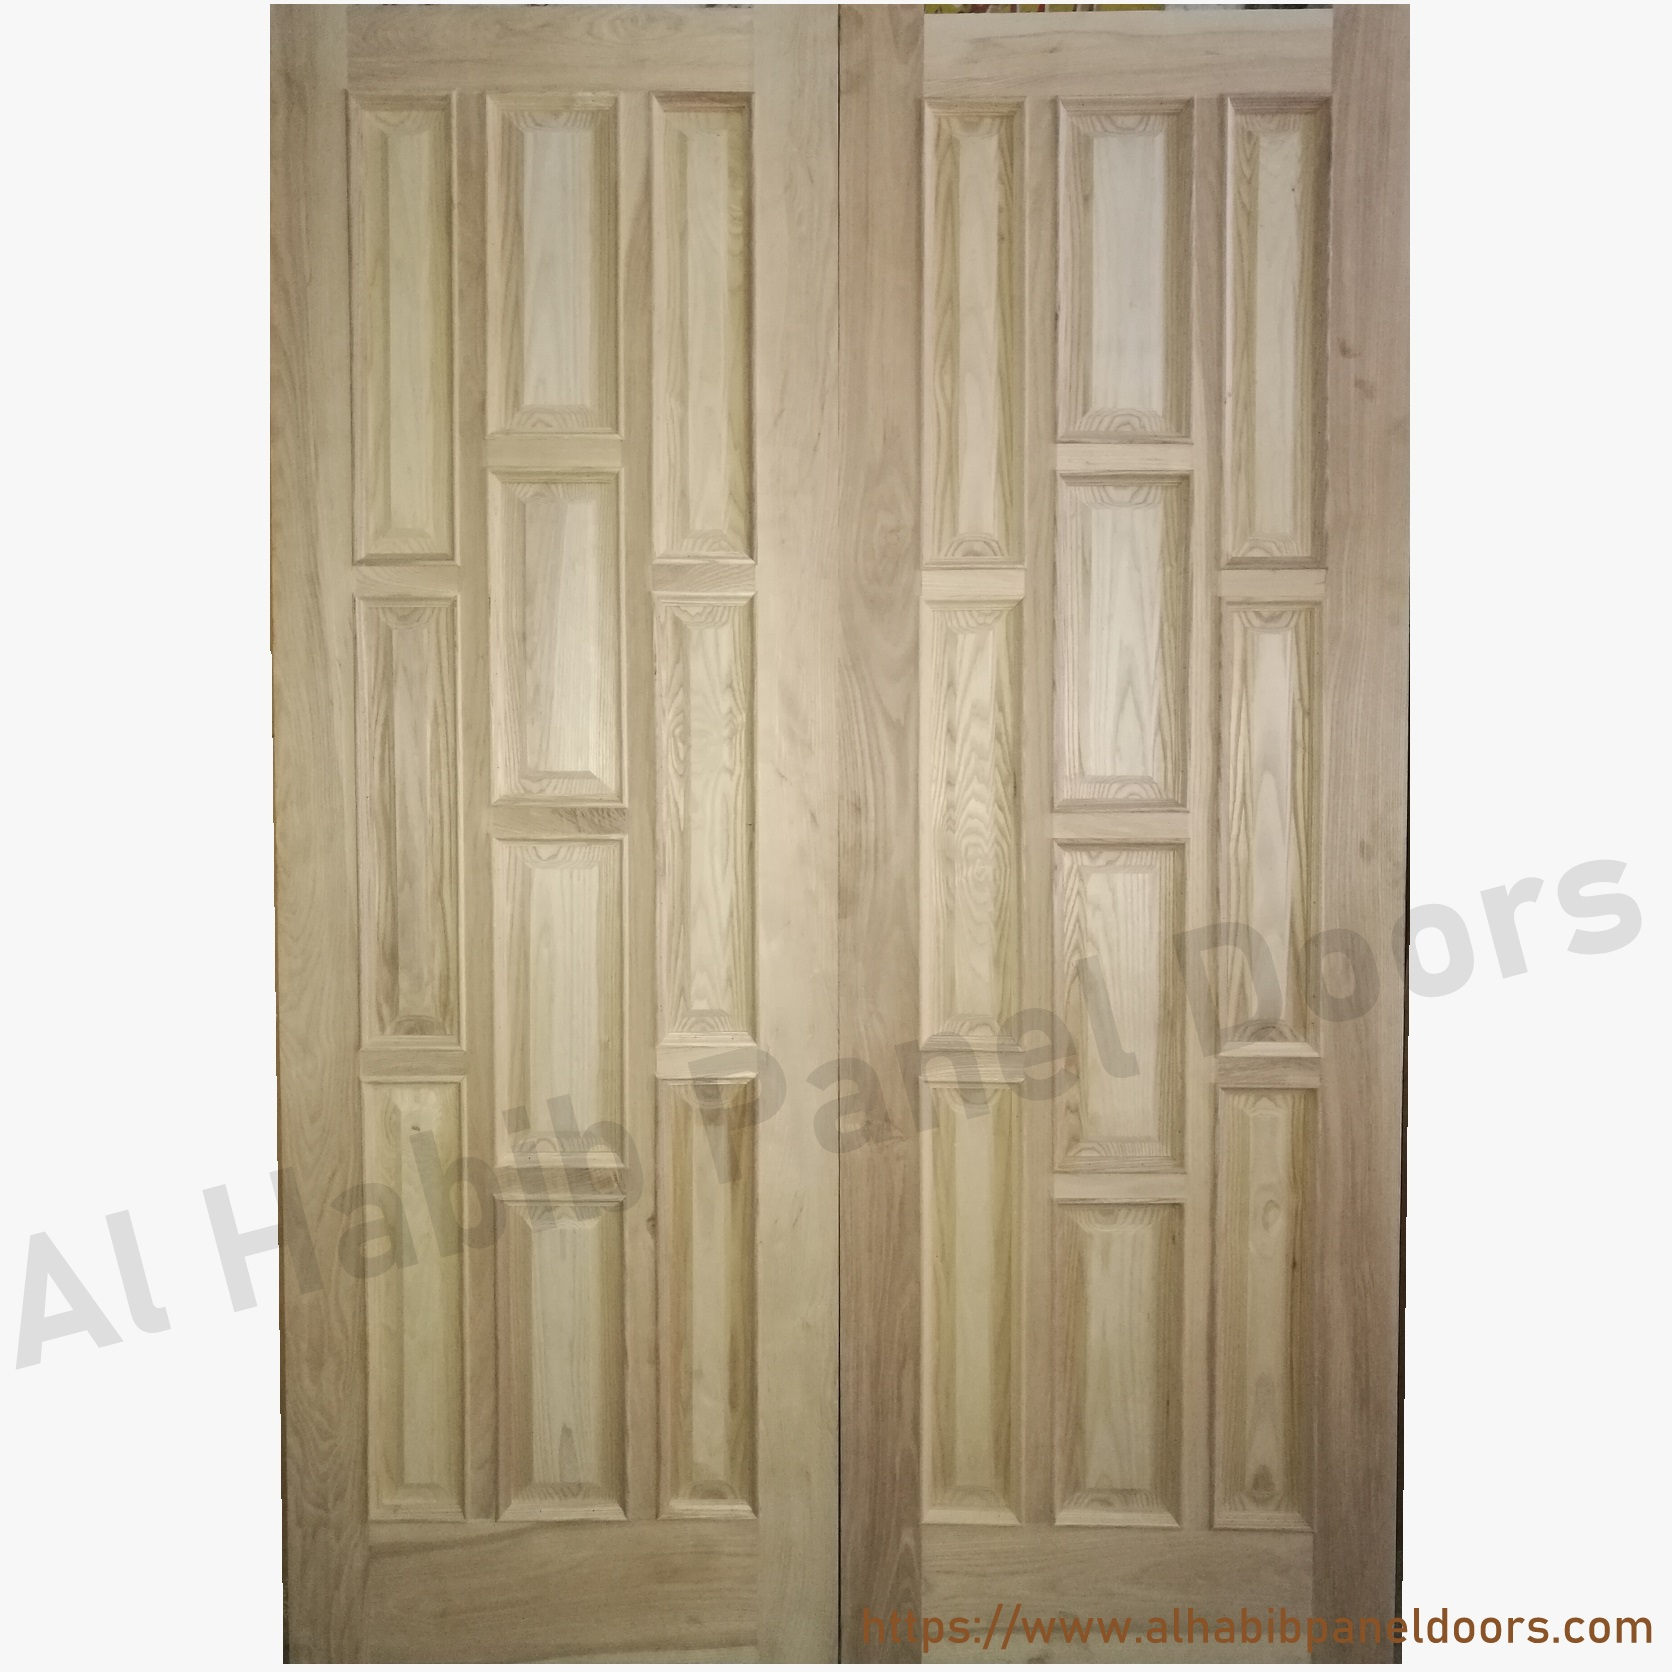 Diyar solid wood main double door hpd412 main doors al for Latest design for main door